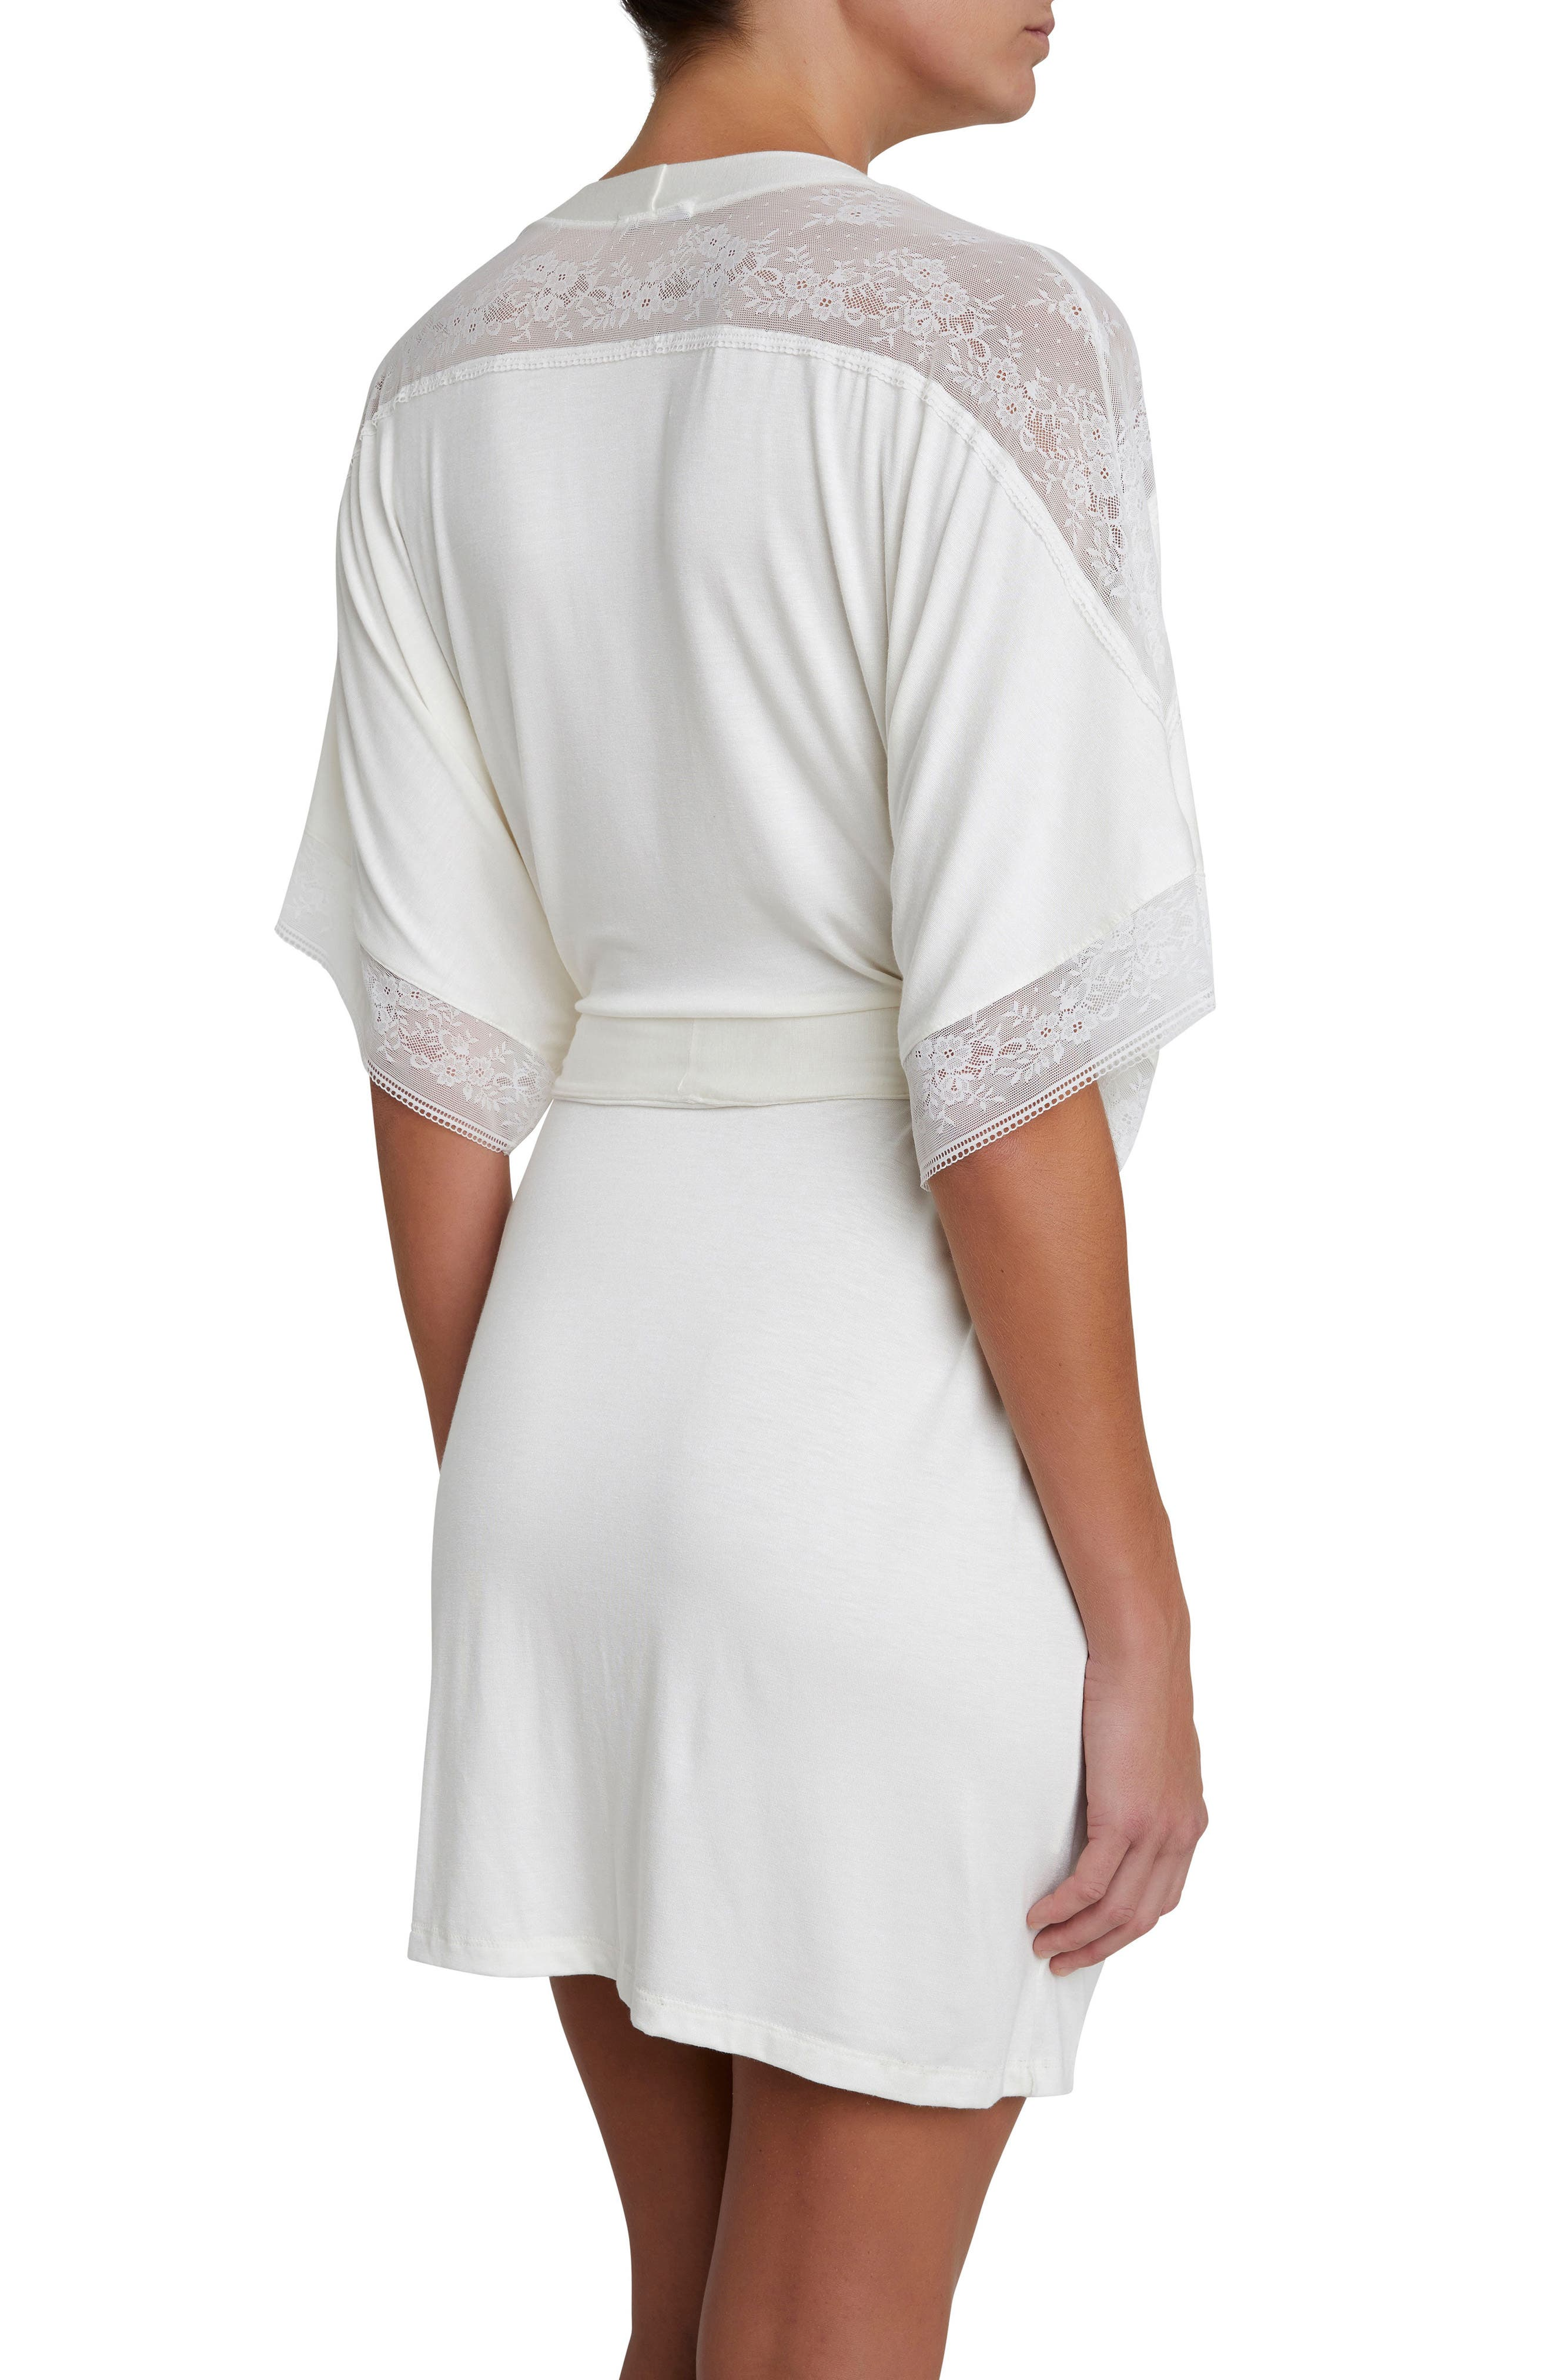 Adora the Date Short Robe,                             Alternate thumbnail 2, color,                             IVORY